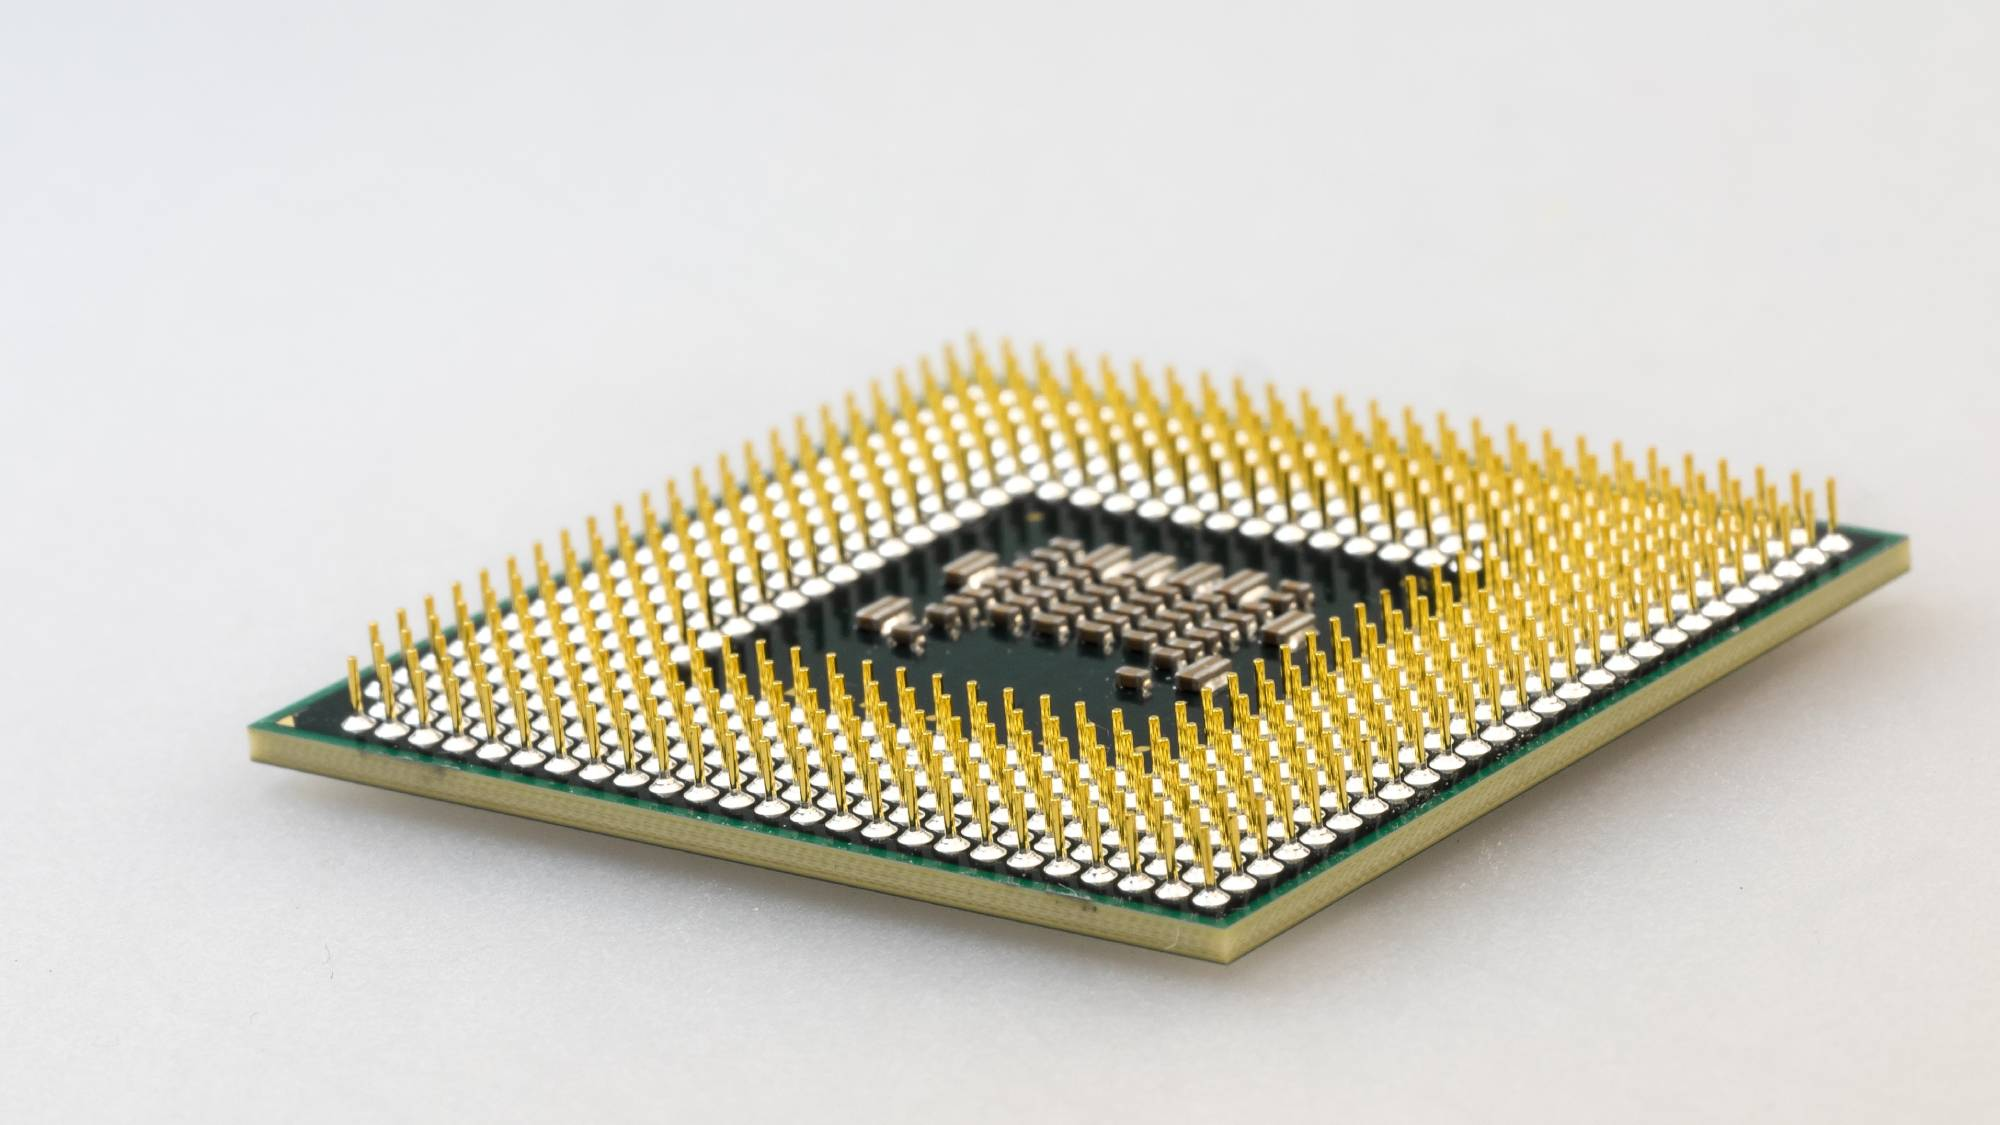 A studio close-up of a chipset.